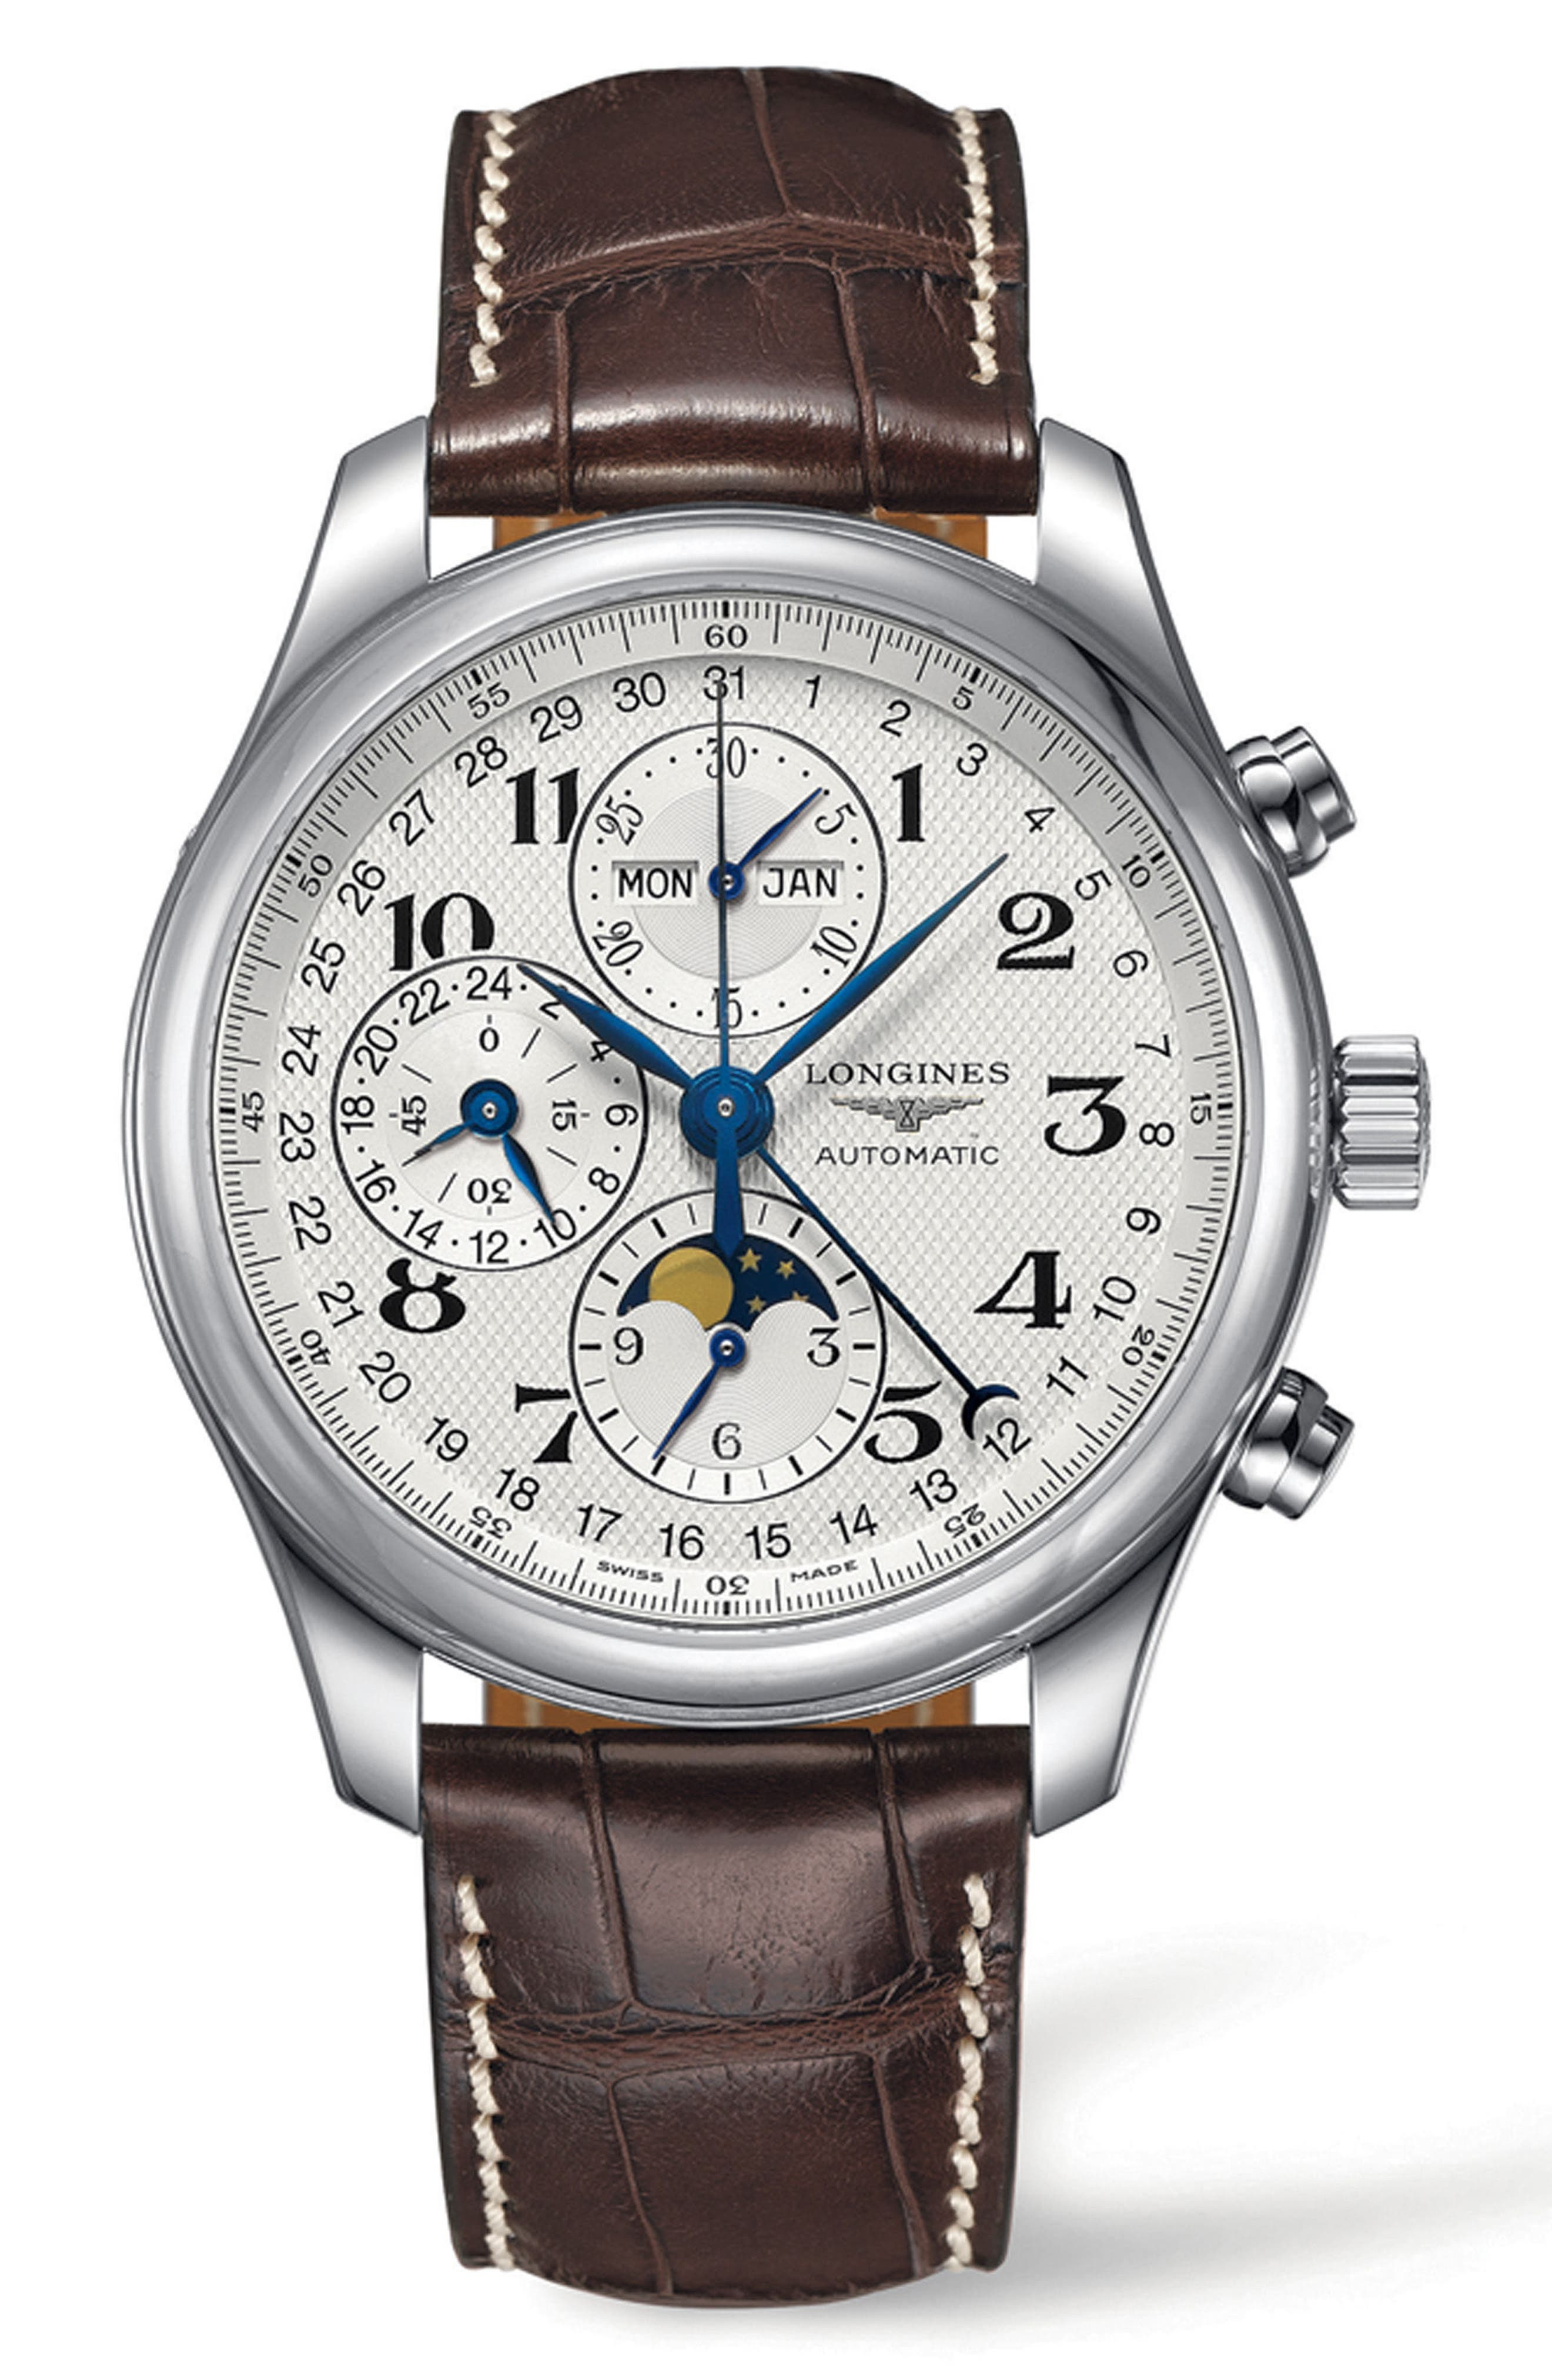 Master Automatic Chronograph Leather Strap Watch